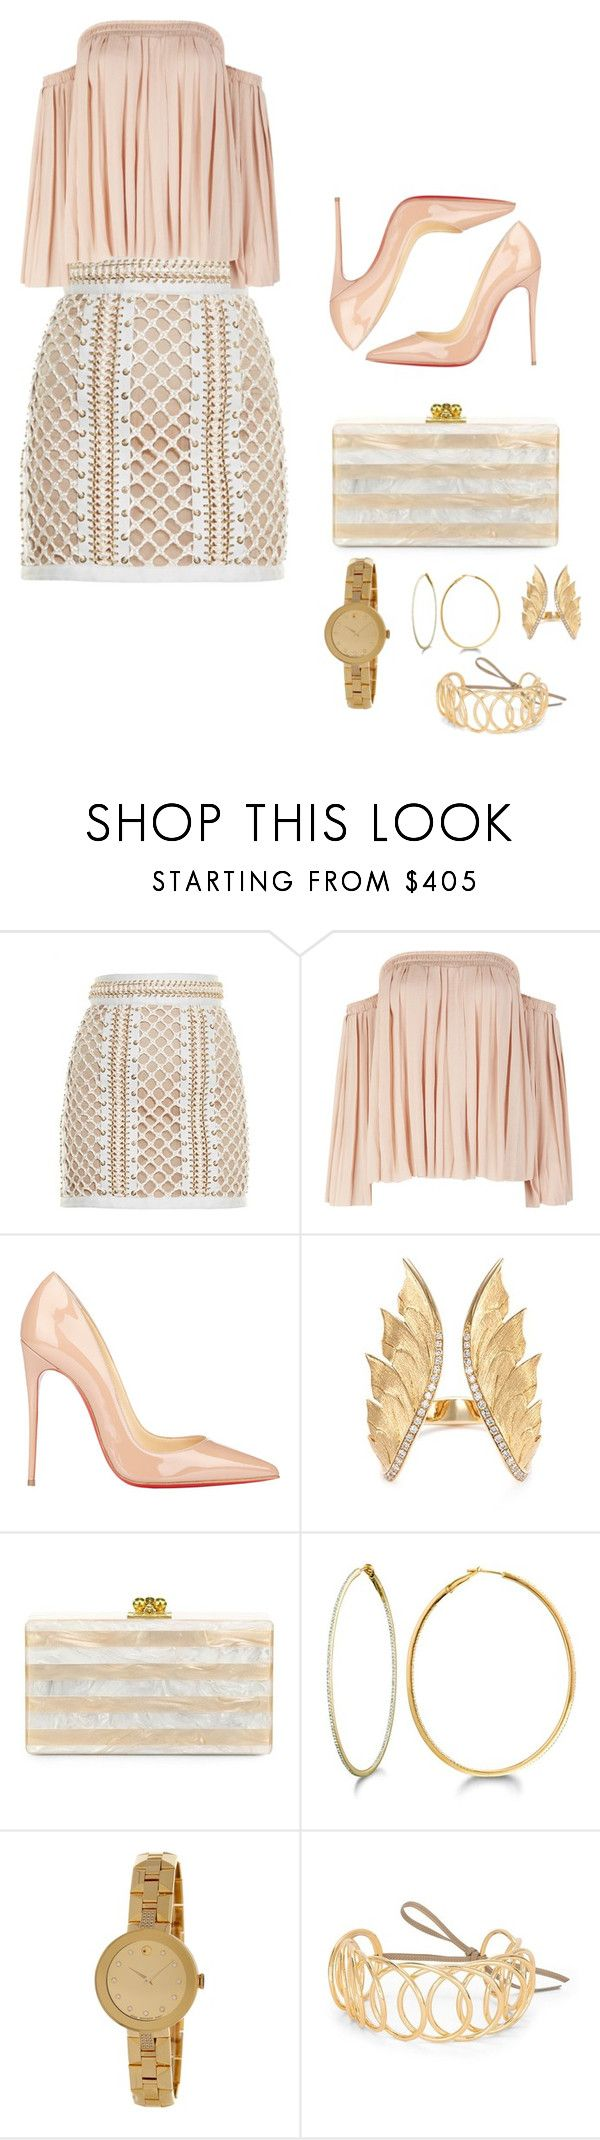 """""""Friday night outfit"""" by vanessa-flugence ❤ liked on Polyvore featuring Balmain, Elizabeth and James, Christian Louboutin, Stephen Webster, Edie Parker, Allurez, Movado and Loewe"""